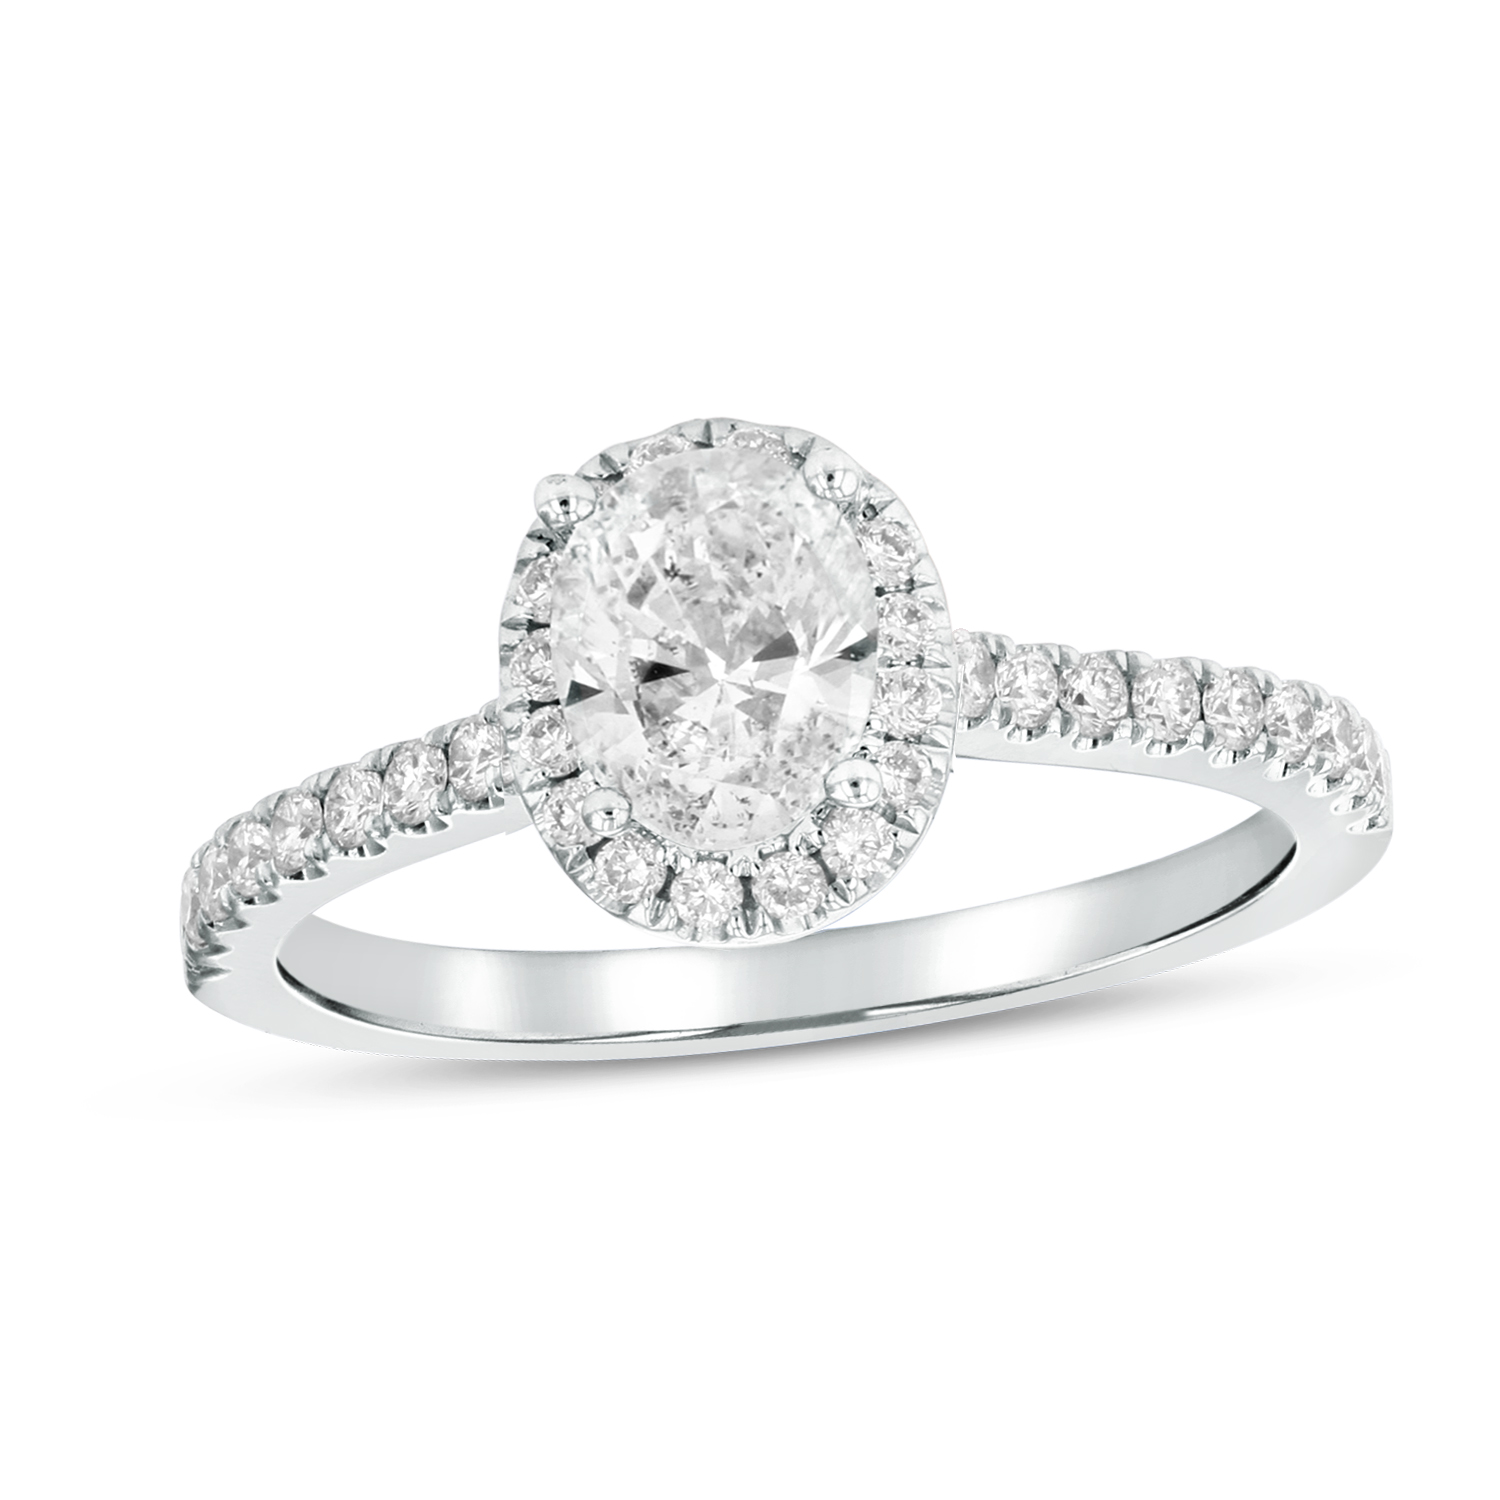 View 0.84ctw Diamond Engagement Ring in 18k Whie Gold